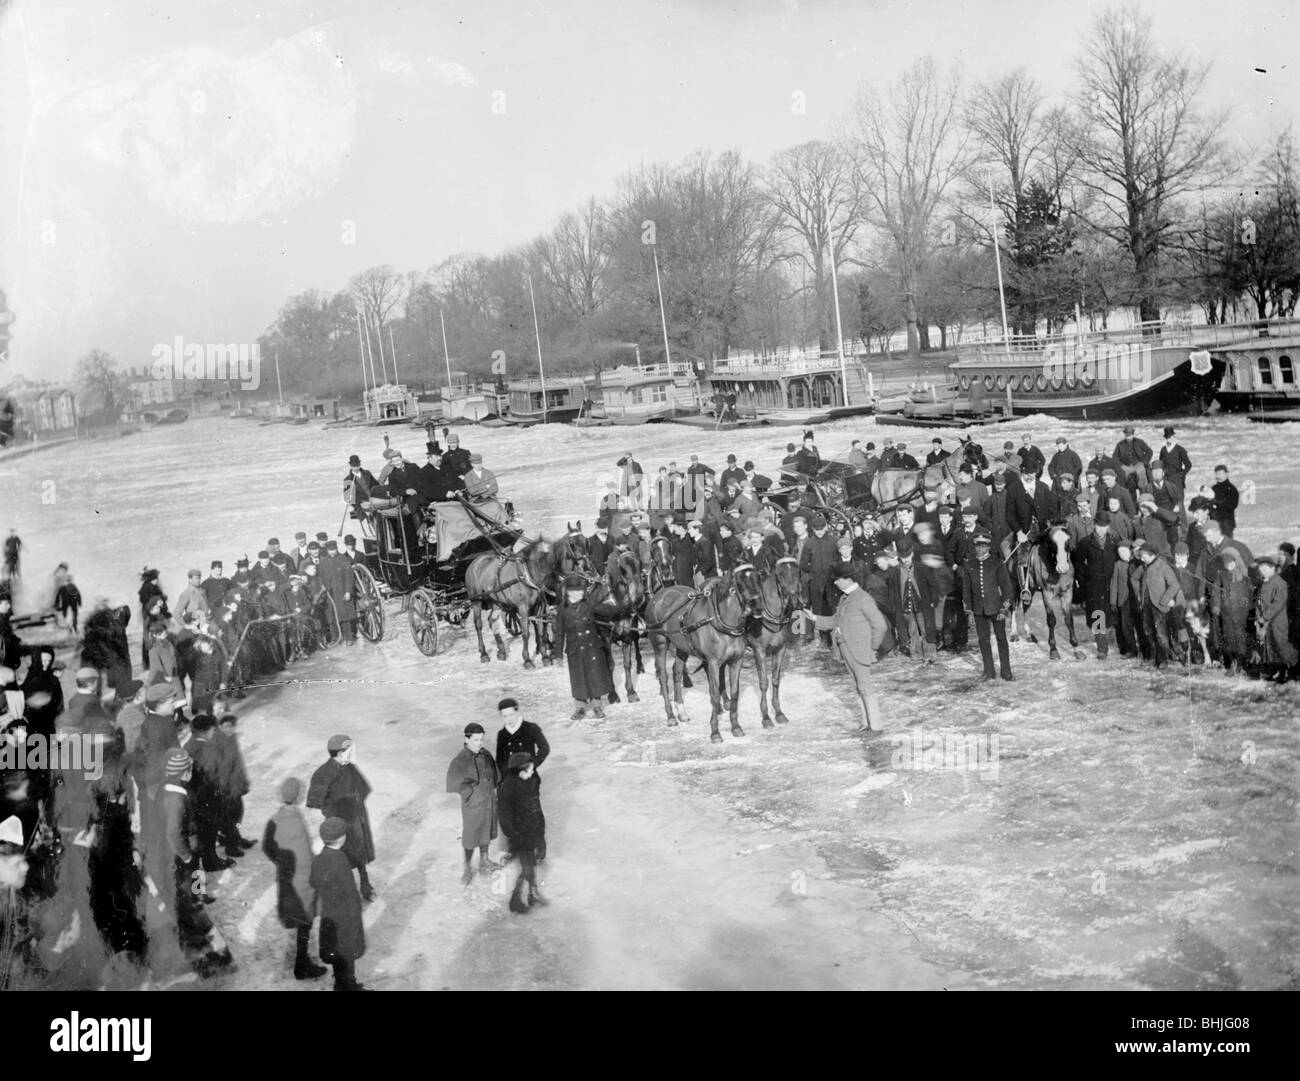 Crowd on the frozen River Thames, Oxfordshire, c1860-c1922. Artist: Henry Taunt - Stock Image